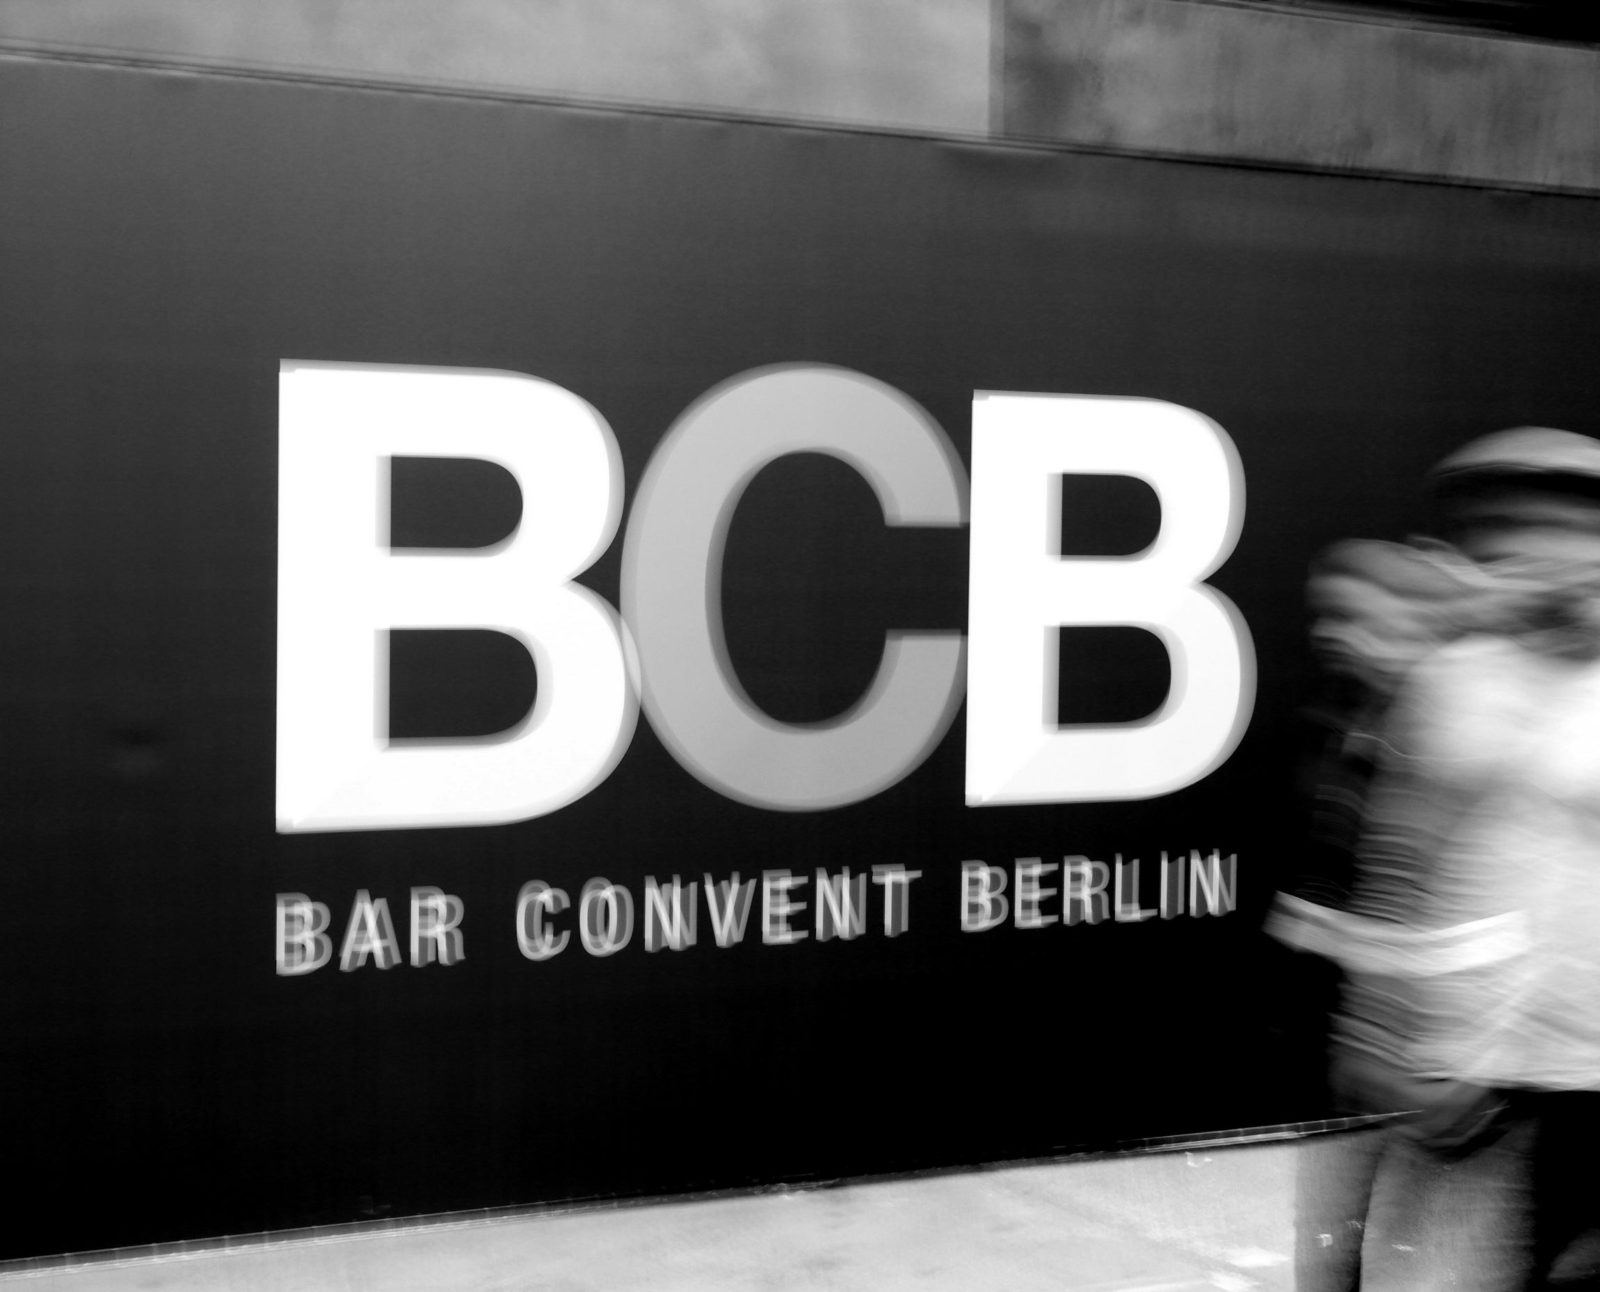 Visuelle Kommunikation, Event Design, BCB, Bar Convent Berlin, Messegestaltung